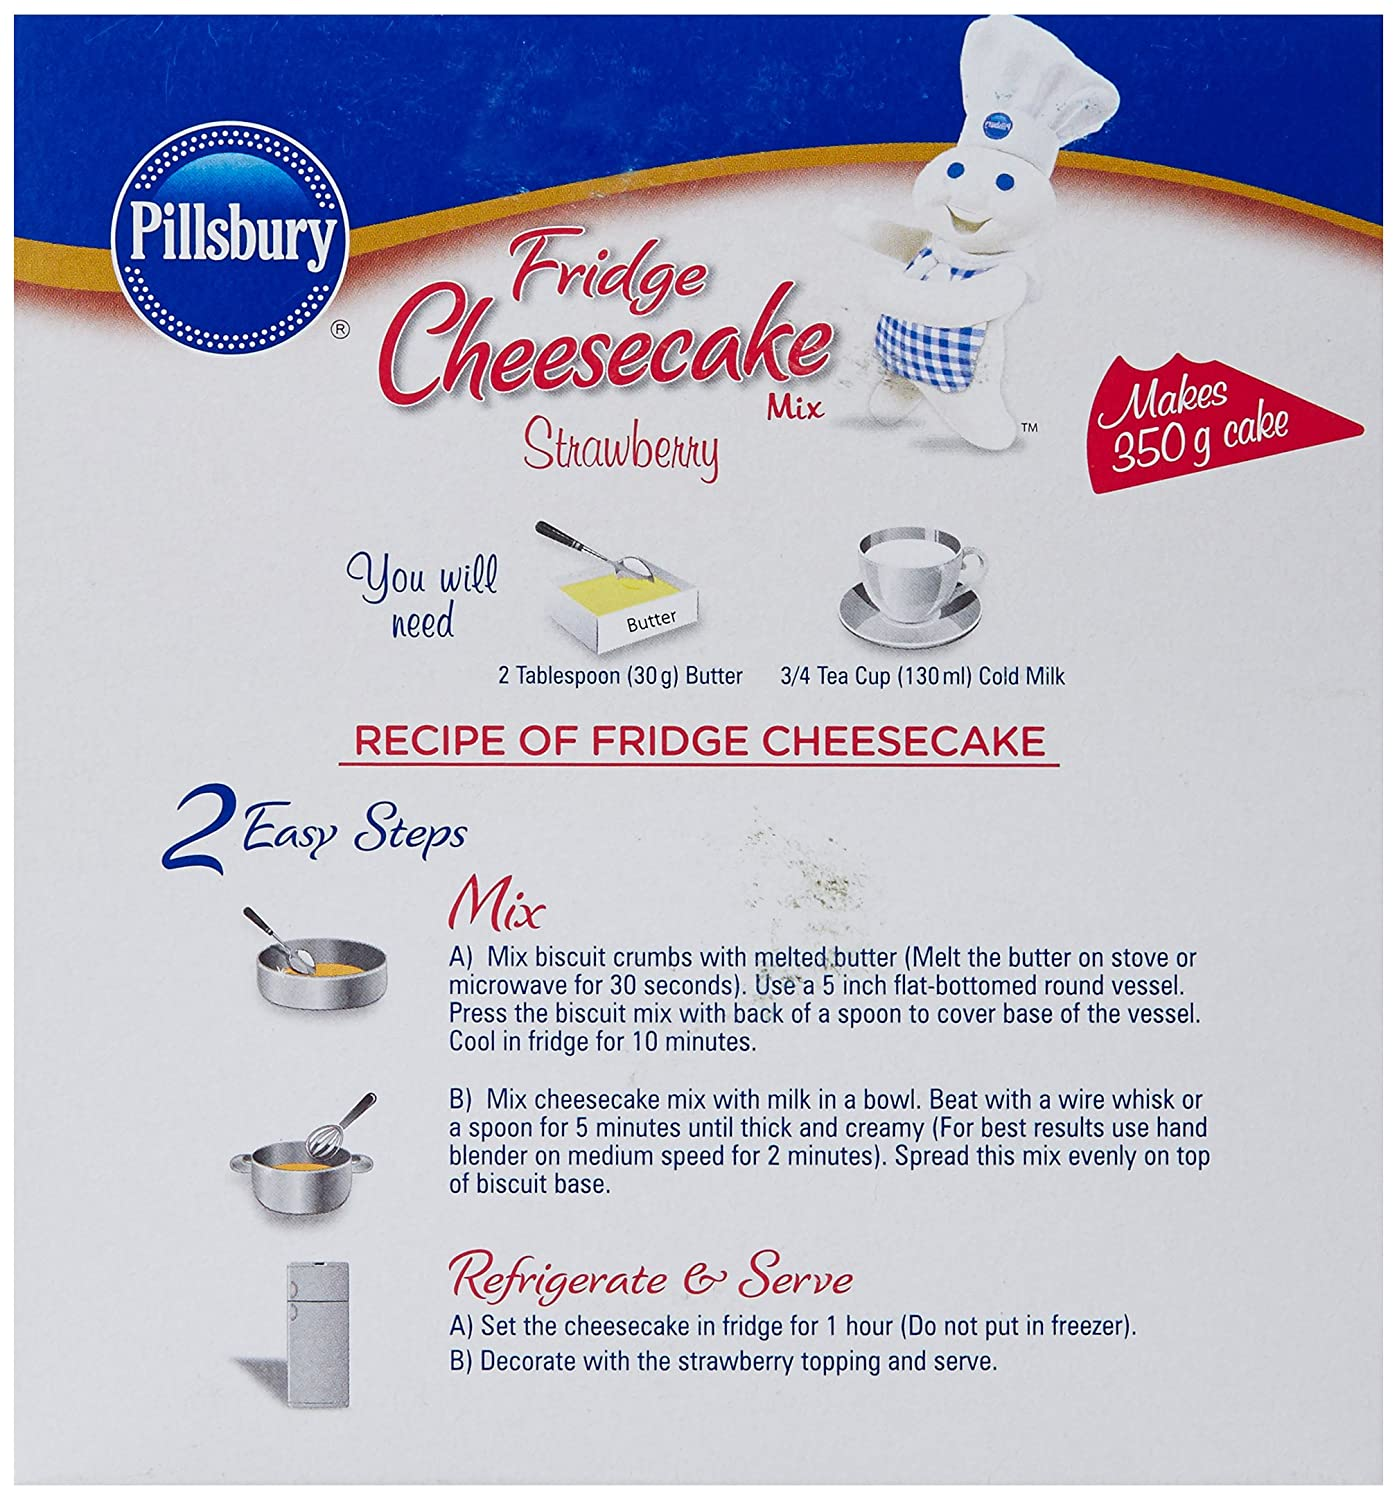 Pillsbury Fridge Cheesecake Mix, Strawberry, 165g: Amazon.in: Grocery & Gourmet Foods